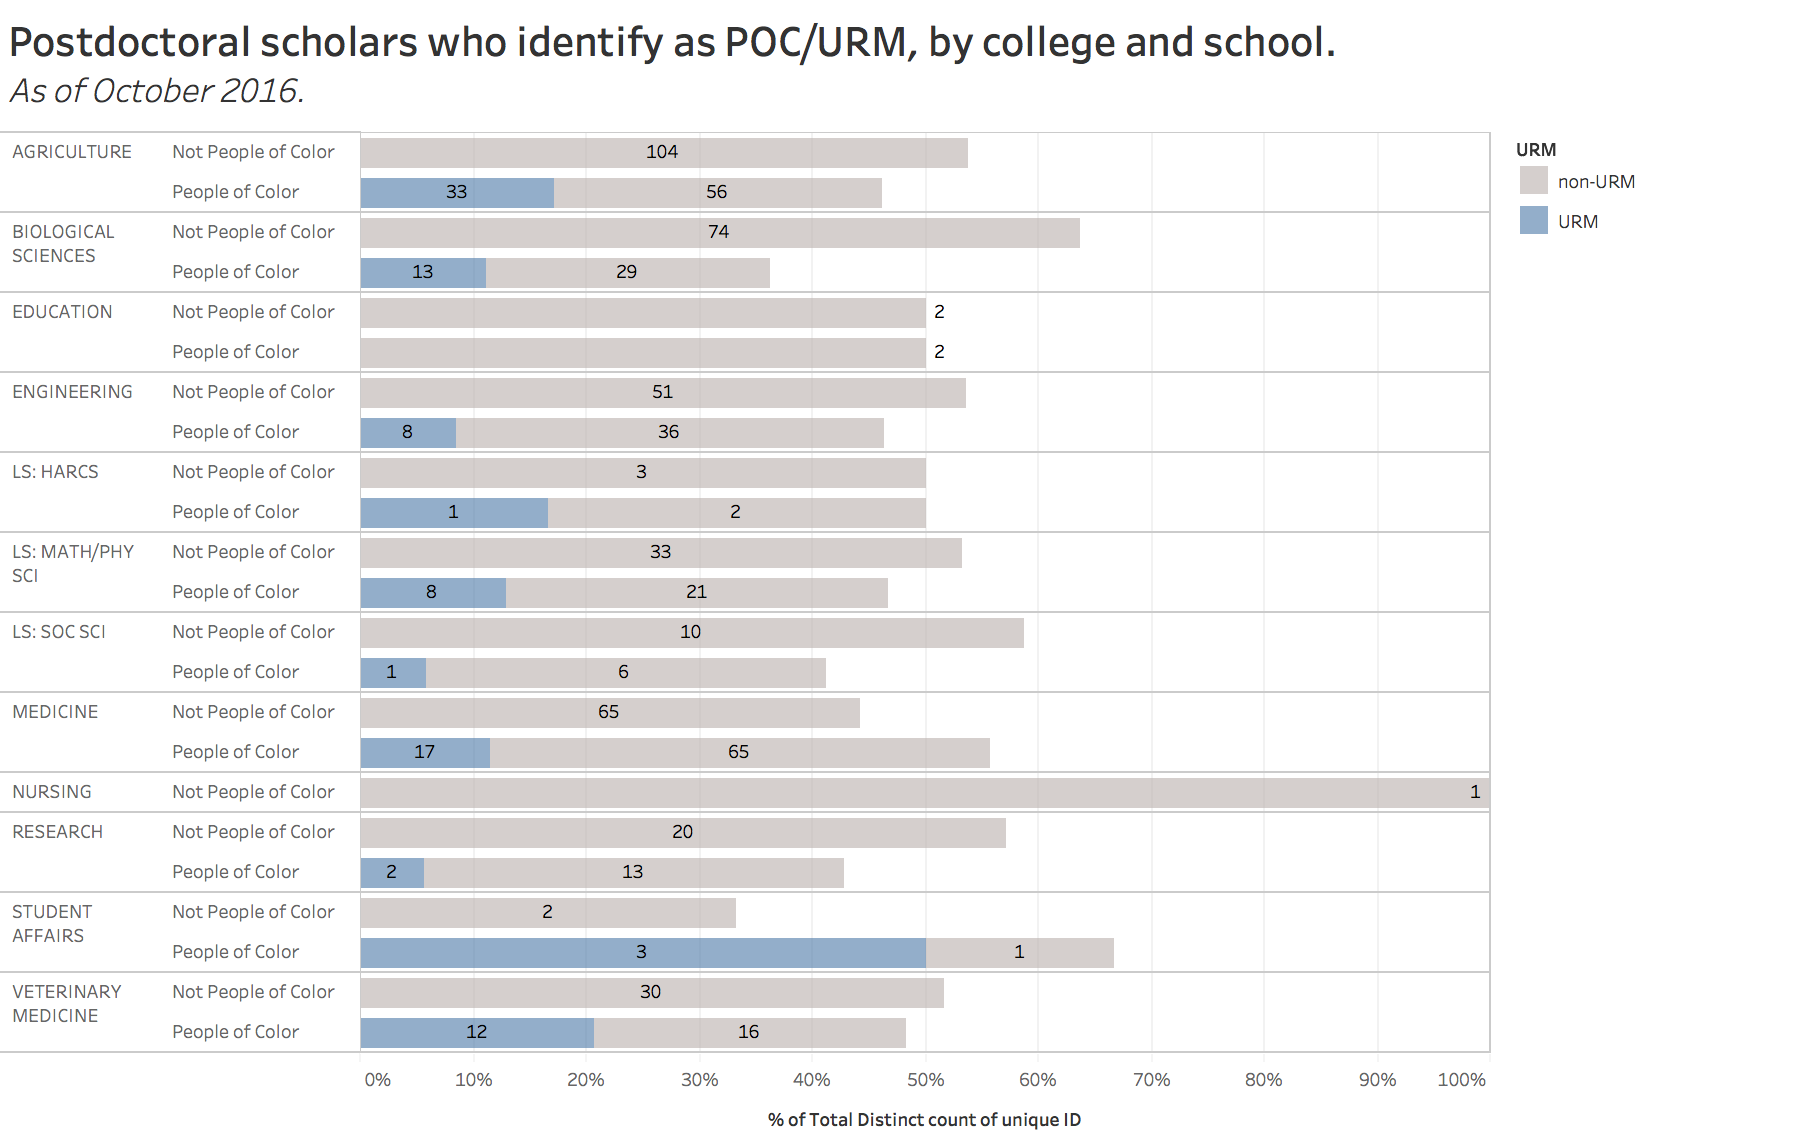 postdocs identify as POC/URM by college and school, october 2016